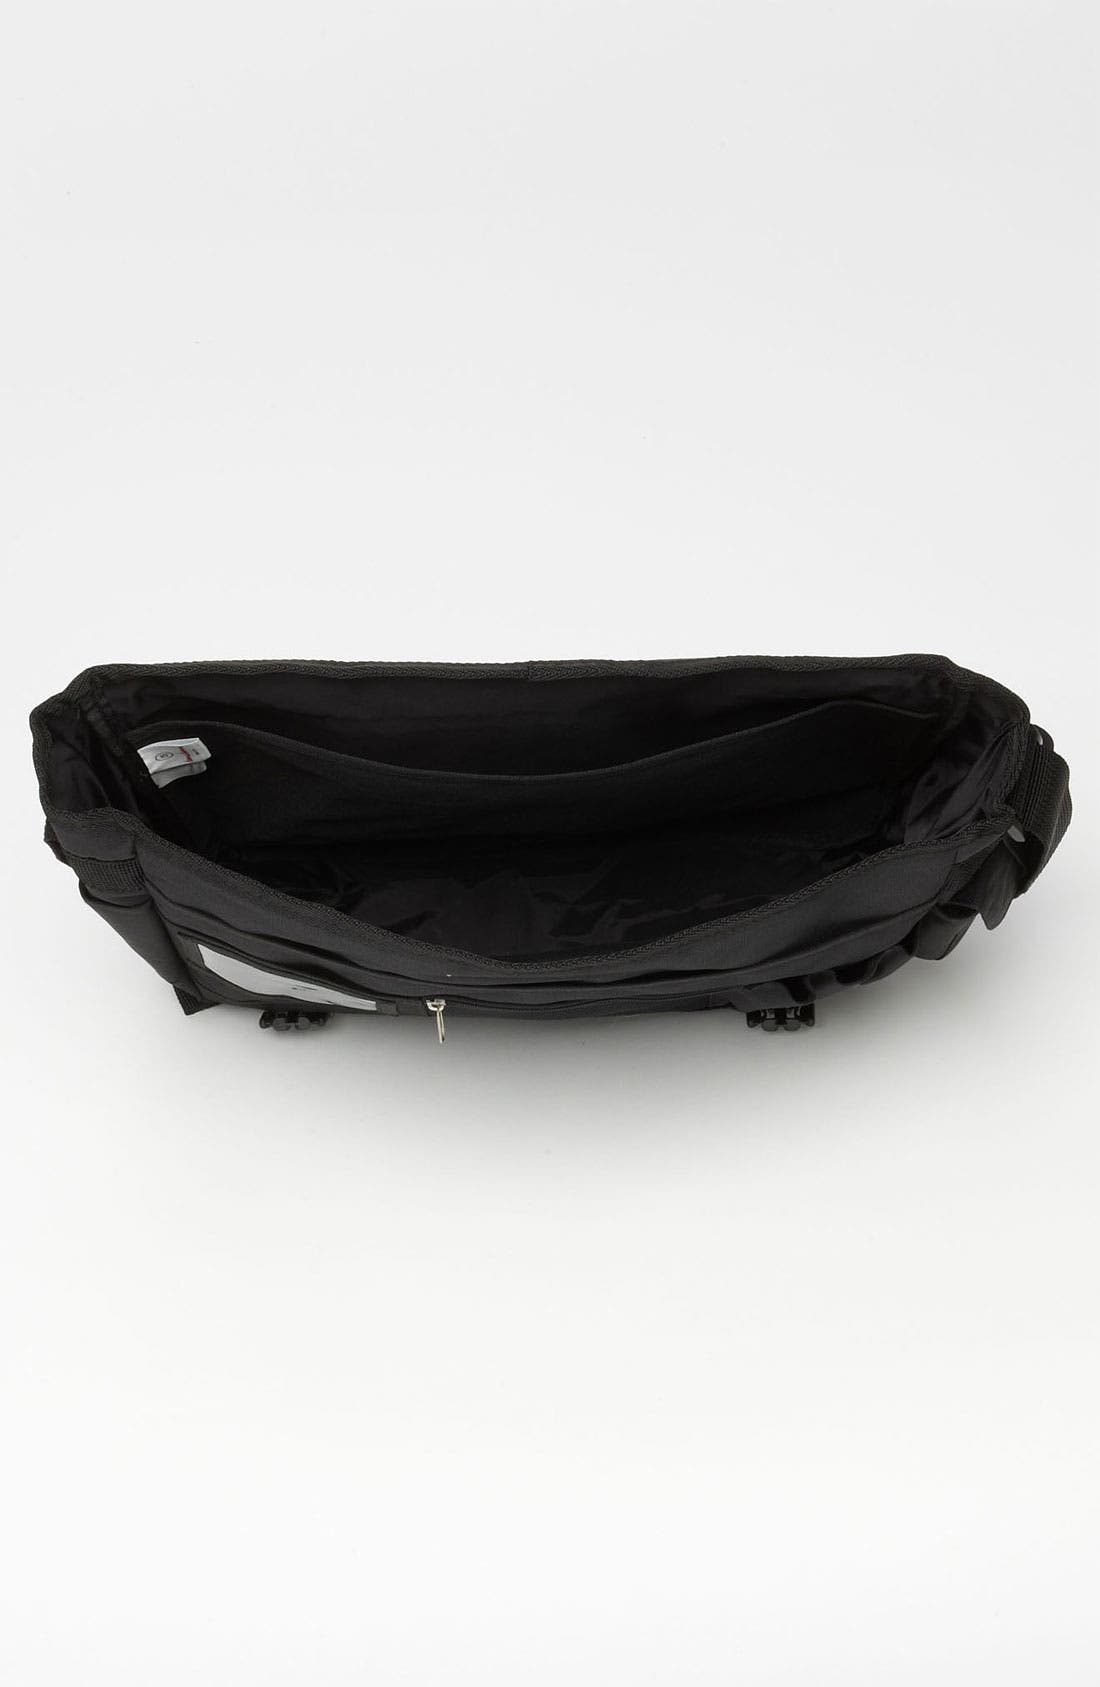 Alternate Image 3  - Hanna Andersson Messenger Bag (Boys)